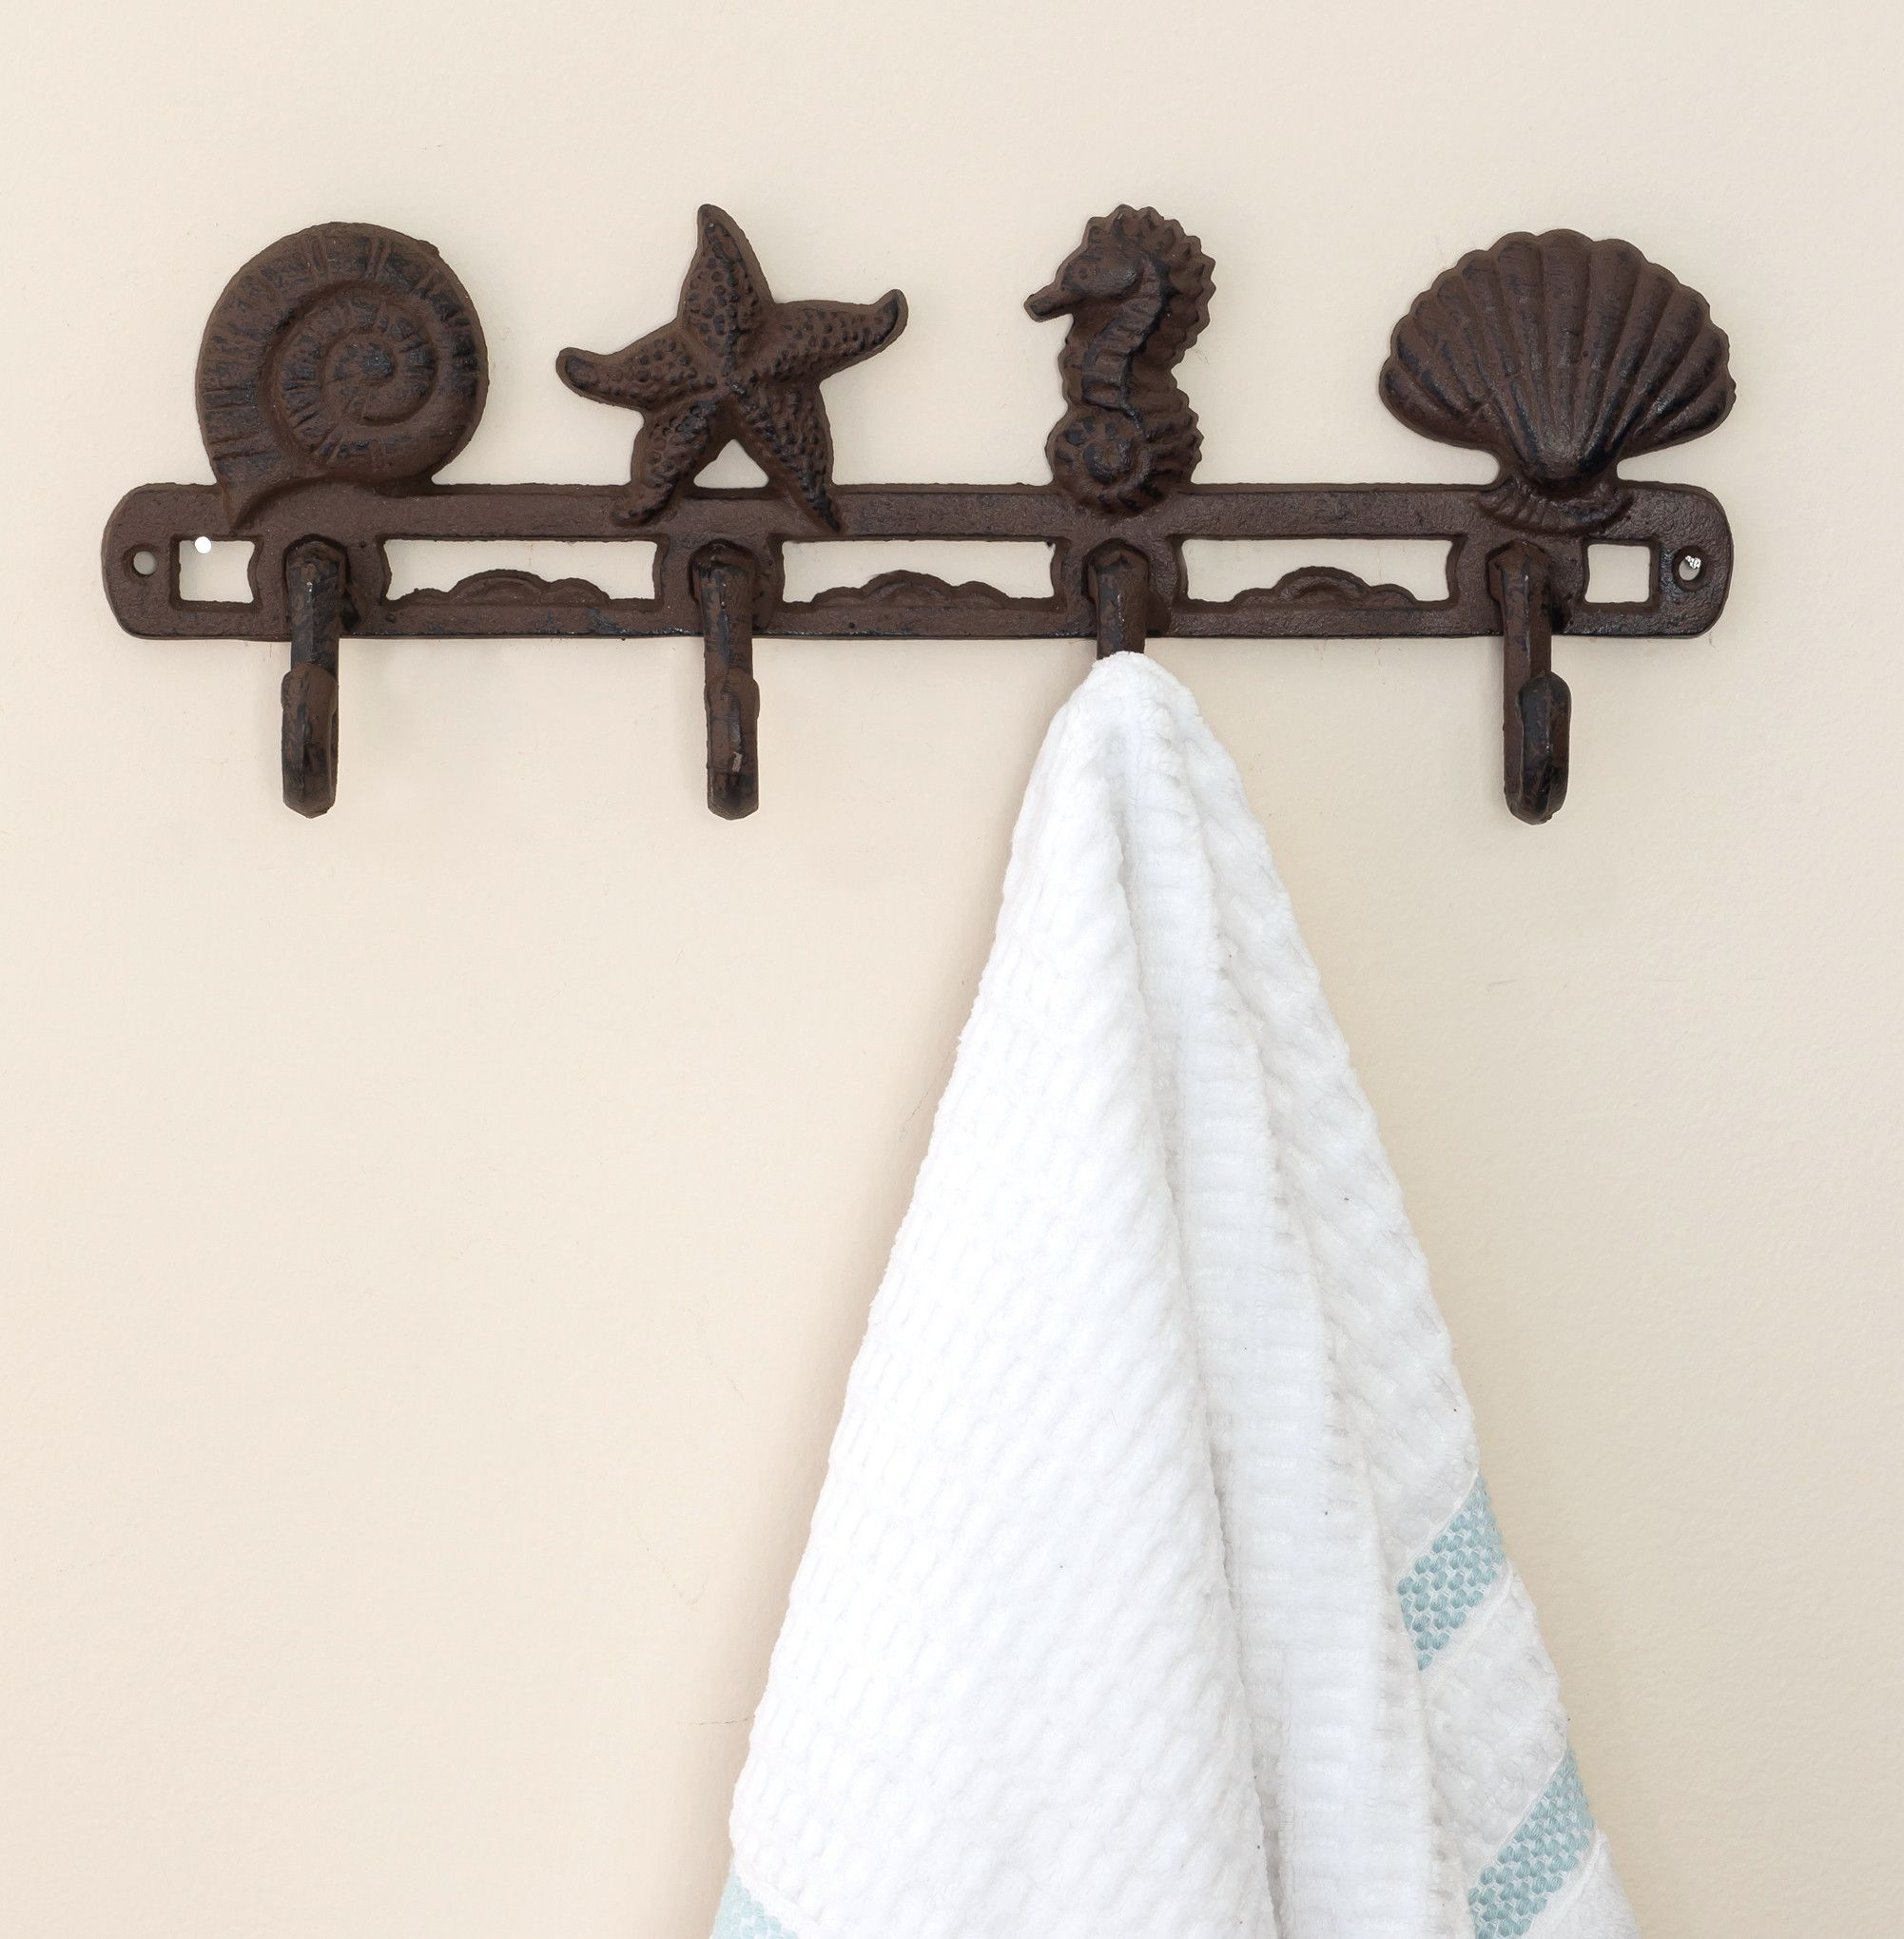 shopping iron line quotations rack on beach hook decorative cast find holder knots guides and cheap hooks towel deals get at lis with fleur wall de marine